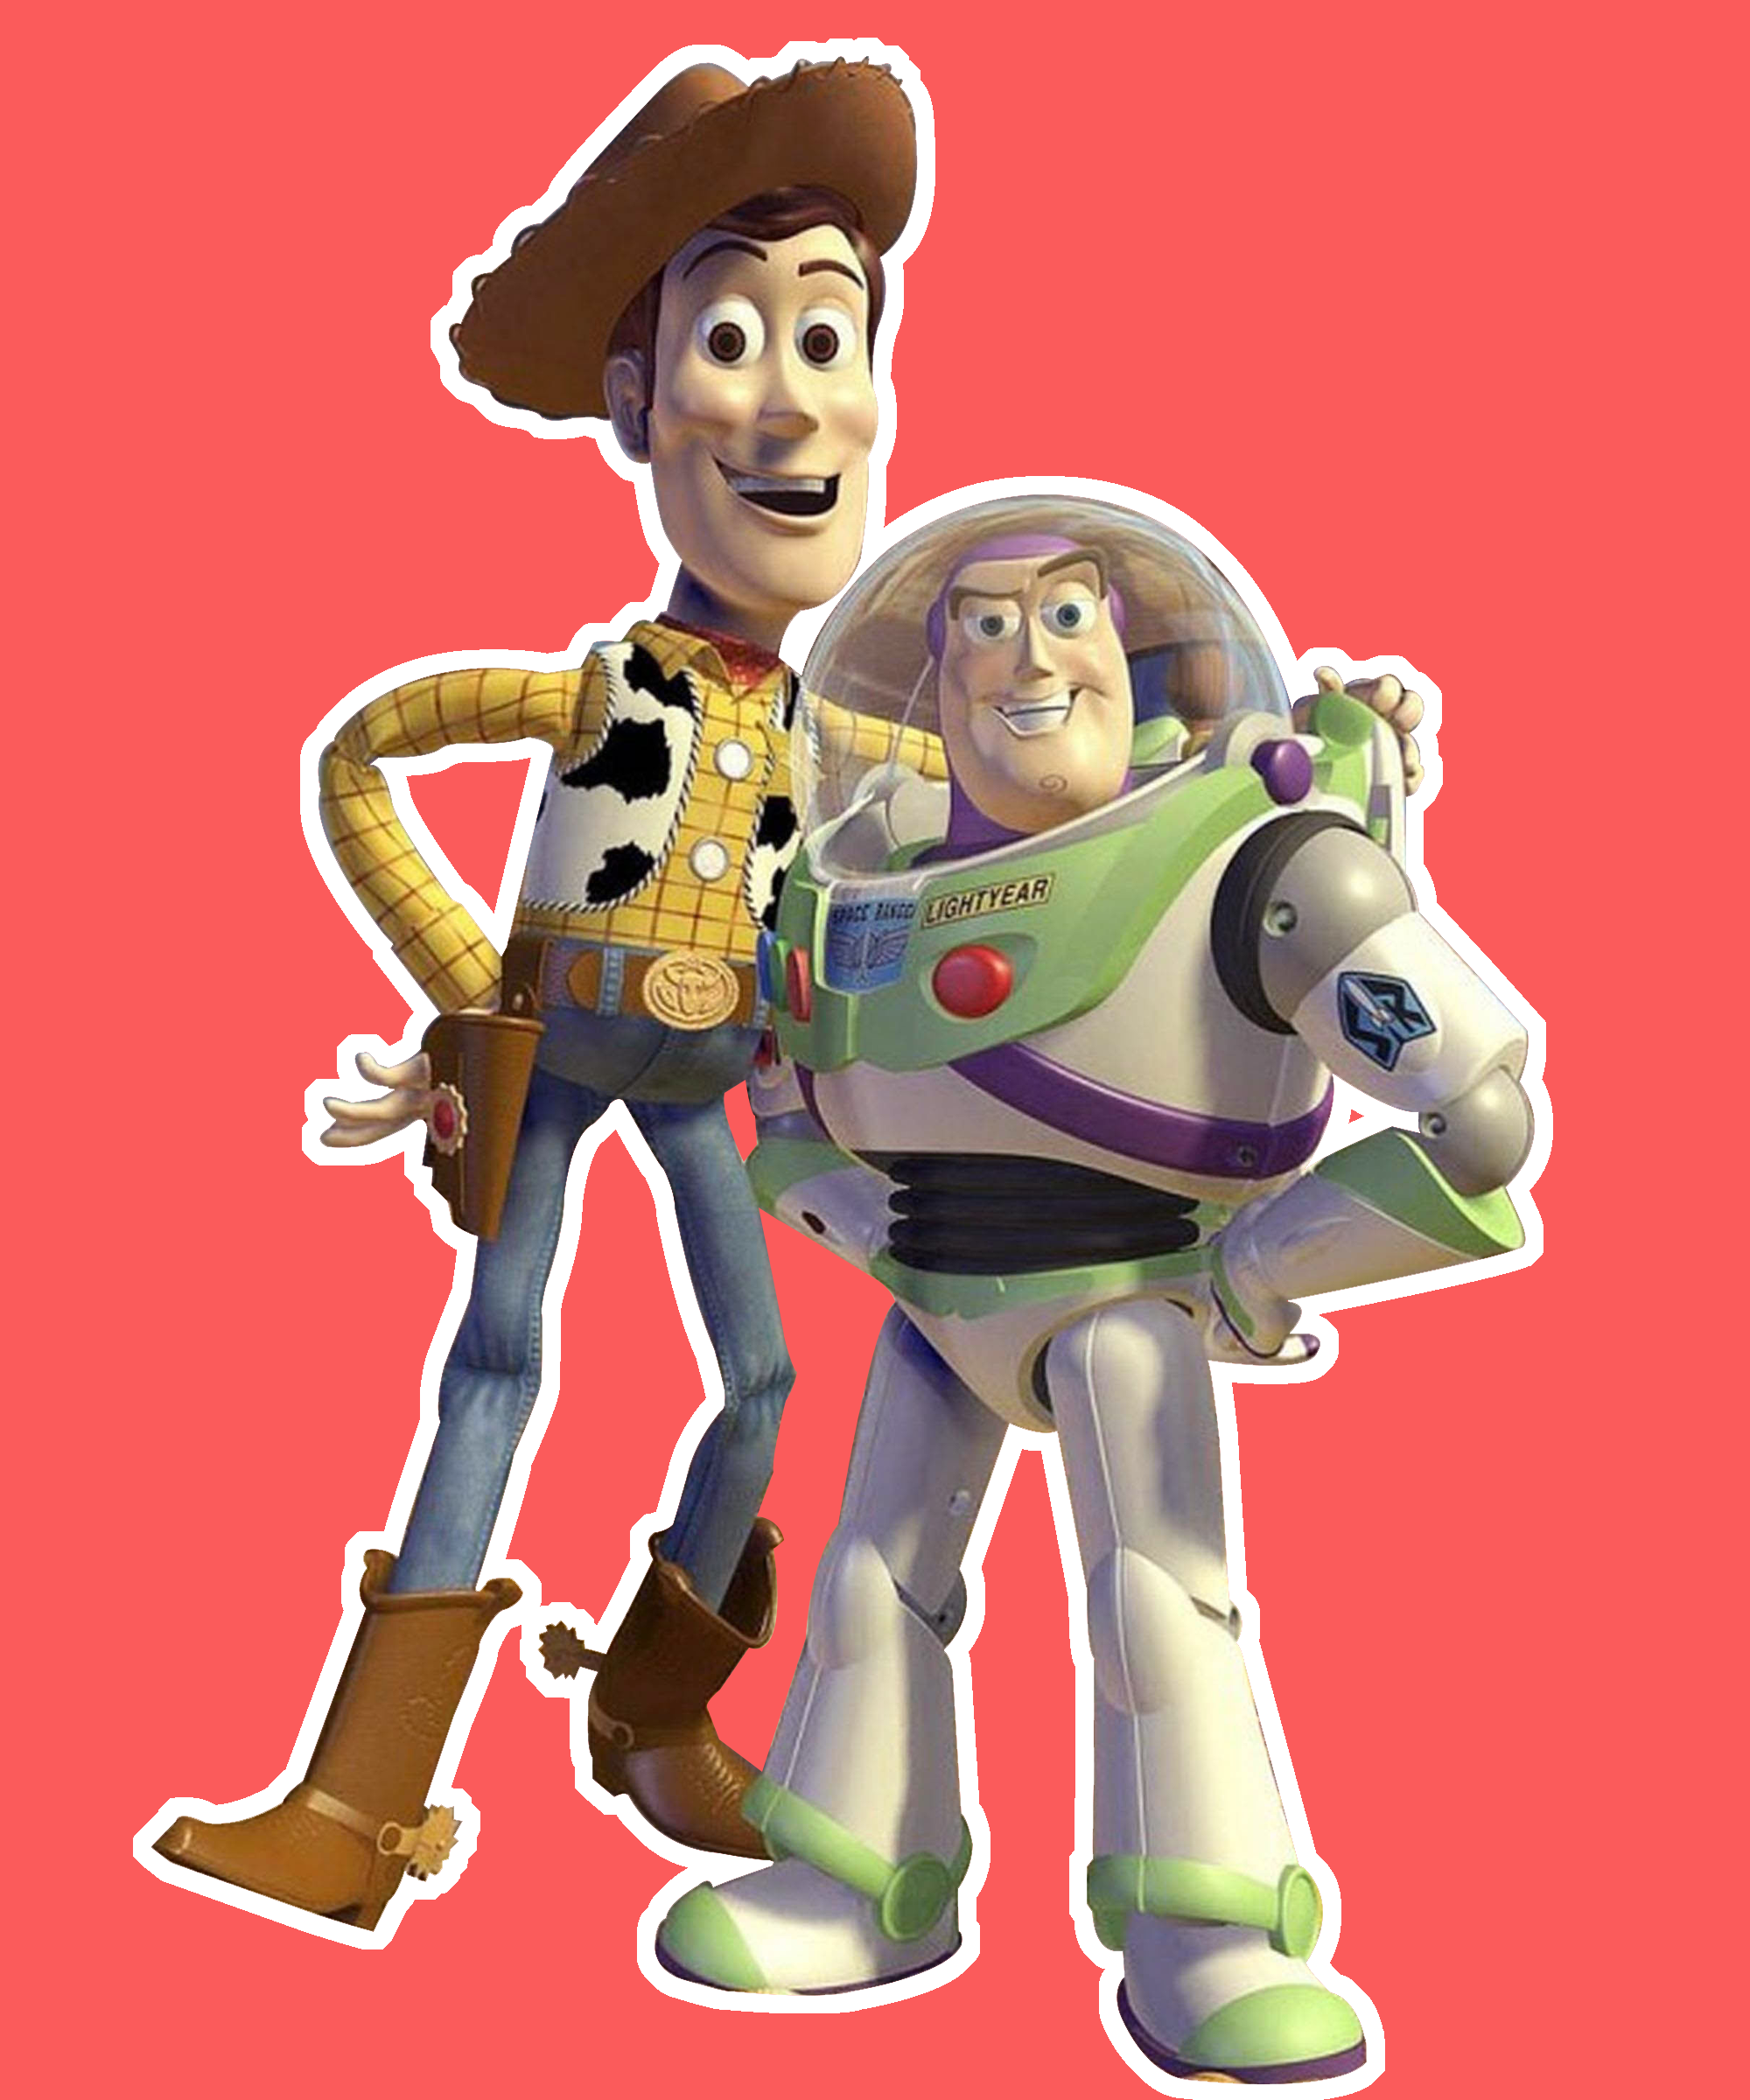 Best Toy Story Pixar Quotes